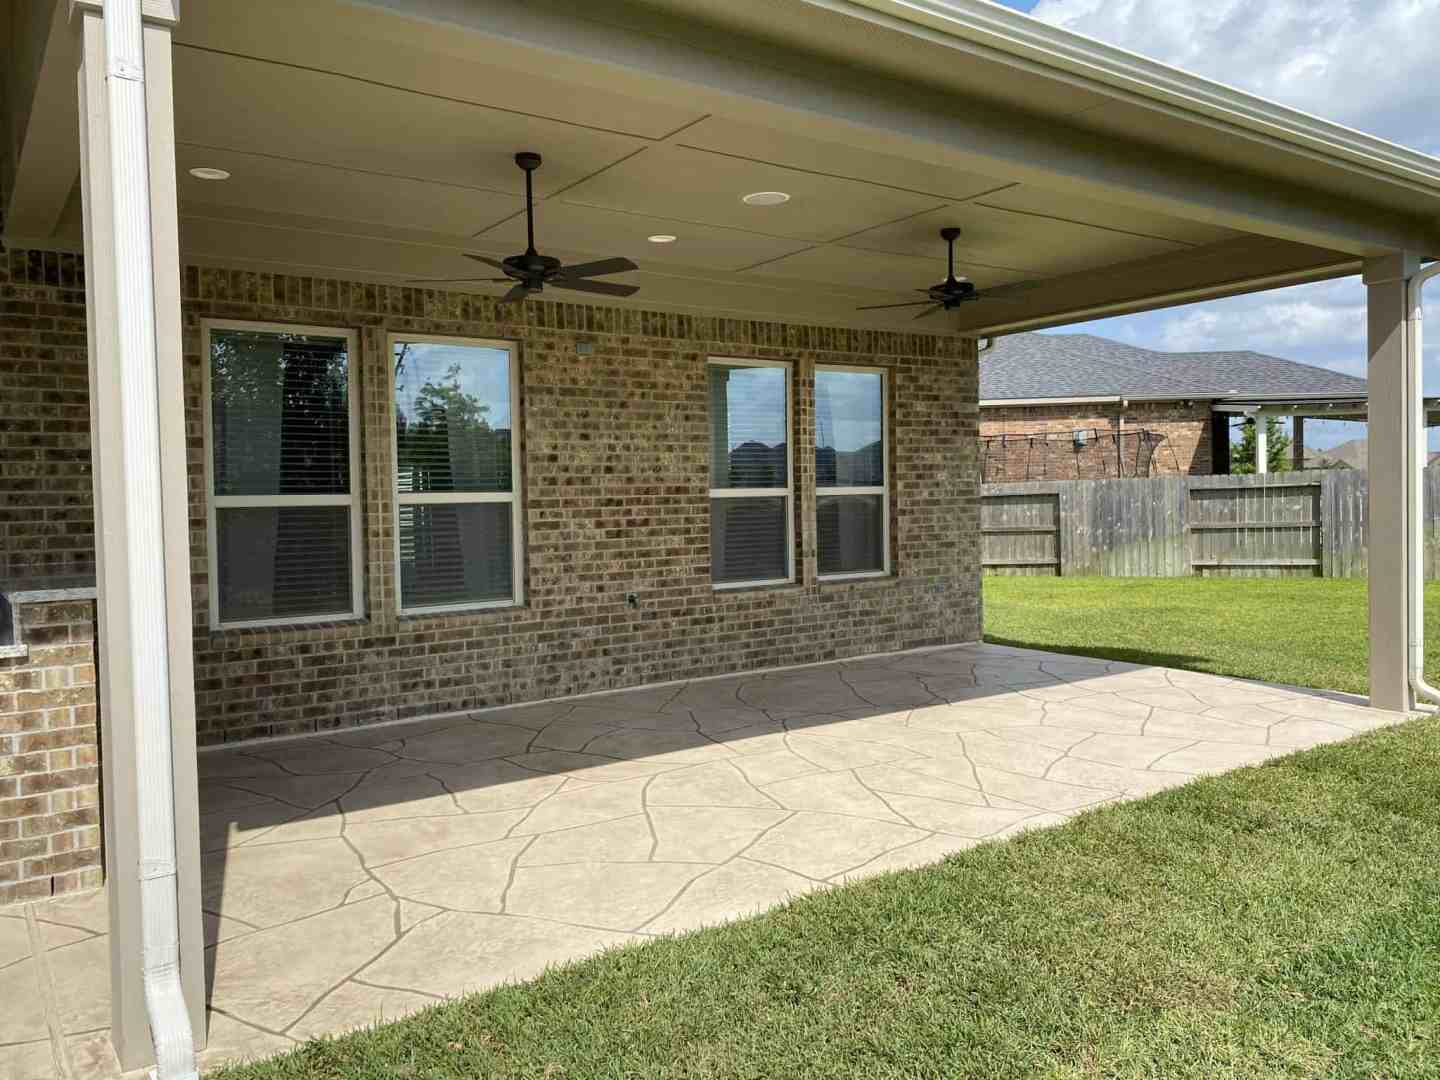 Back-Patio-Extension-Matts-Custom-Decks-stamped-concrete